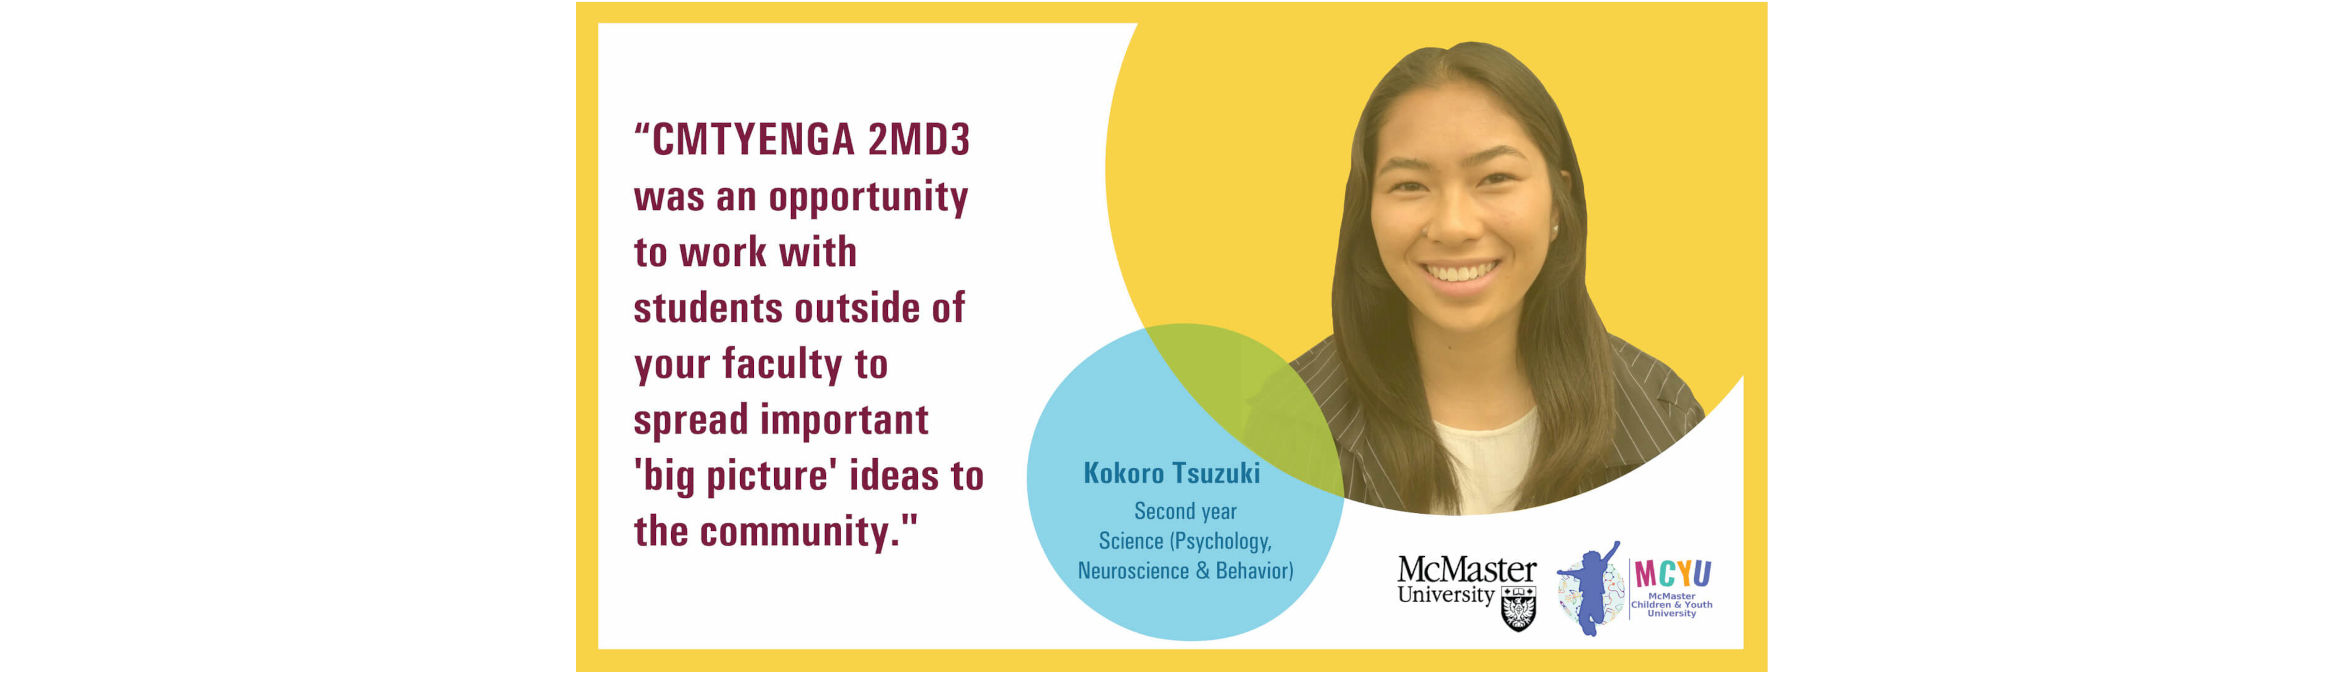 Testimonial by Kokoro Tsuzuki: CMTYENGA 2MD3 was an opportunity to work with students outside of your faculty to spread important 'big picture' ideas to the community.